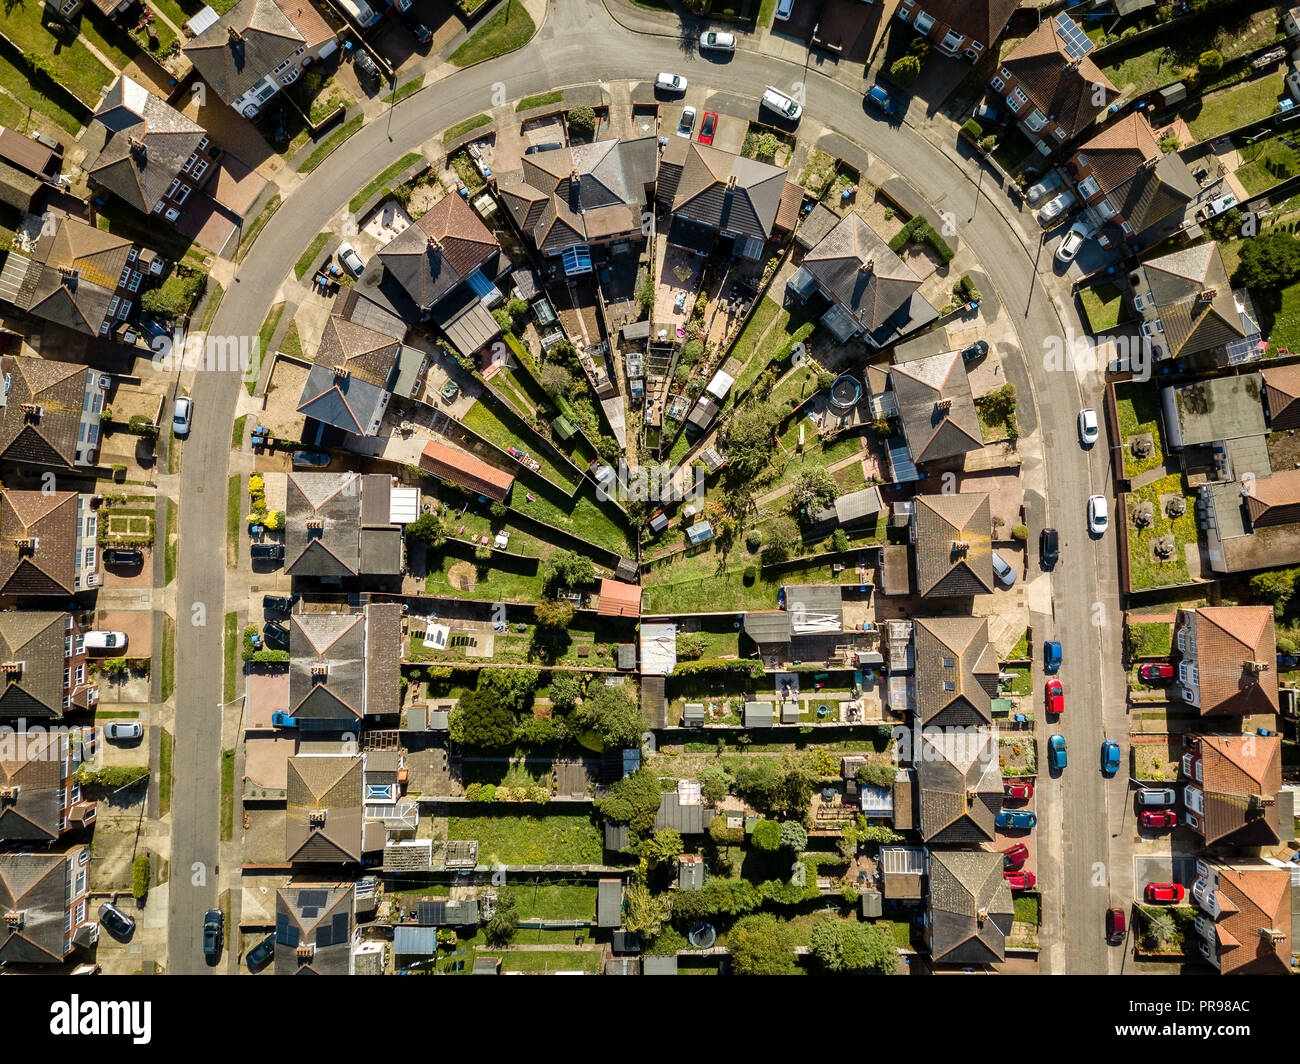 Aerial view of suburban houses in Ipswich, UK. U shaped street. Nice sunny day. Stock Photo